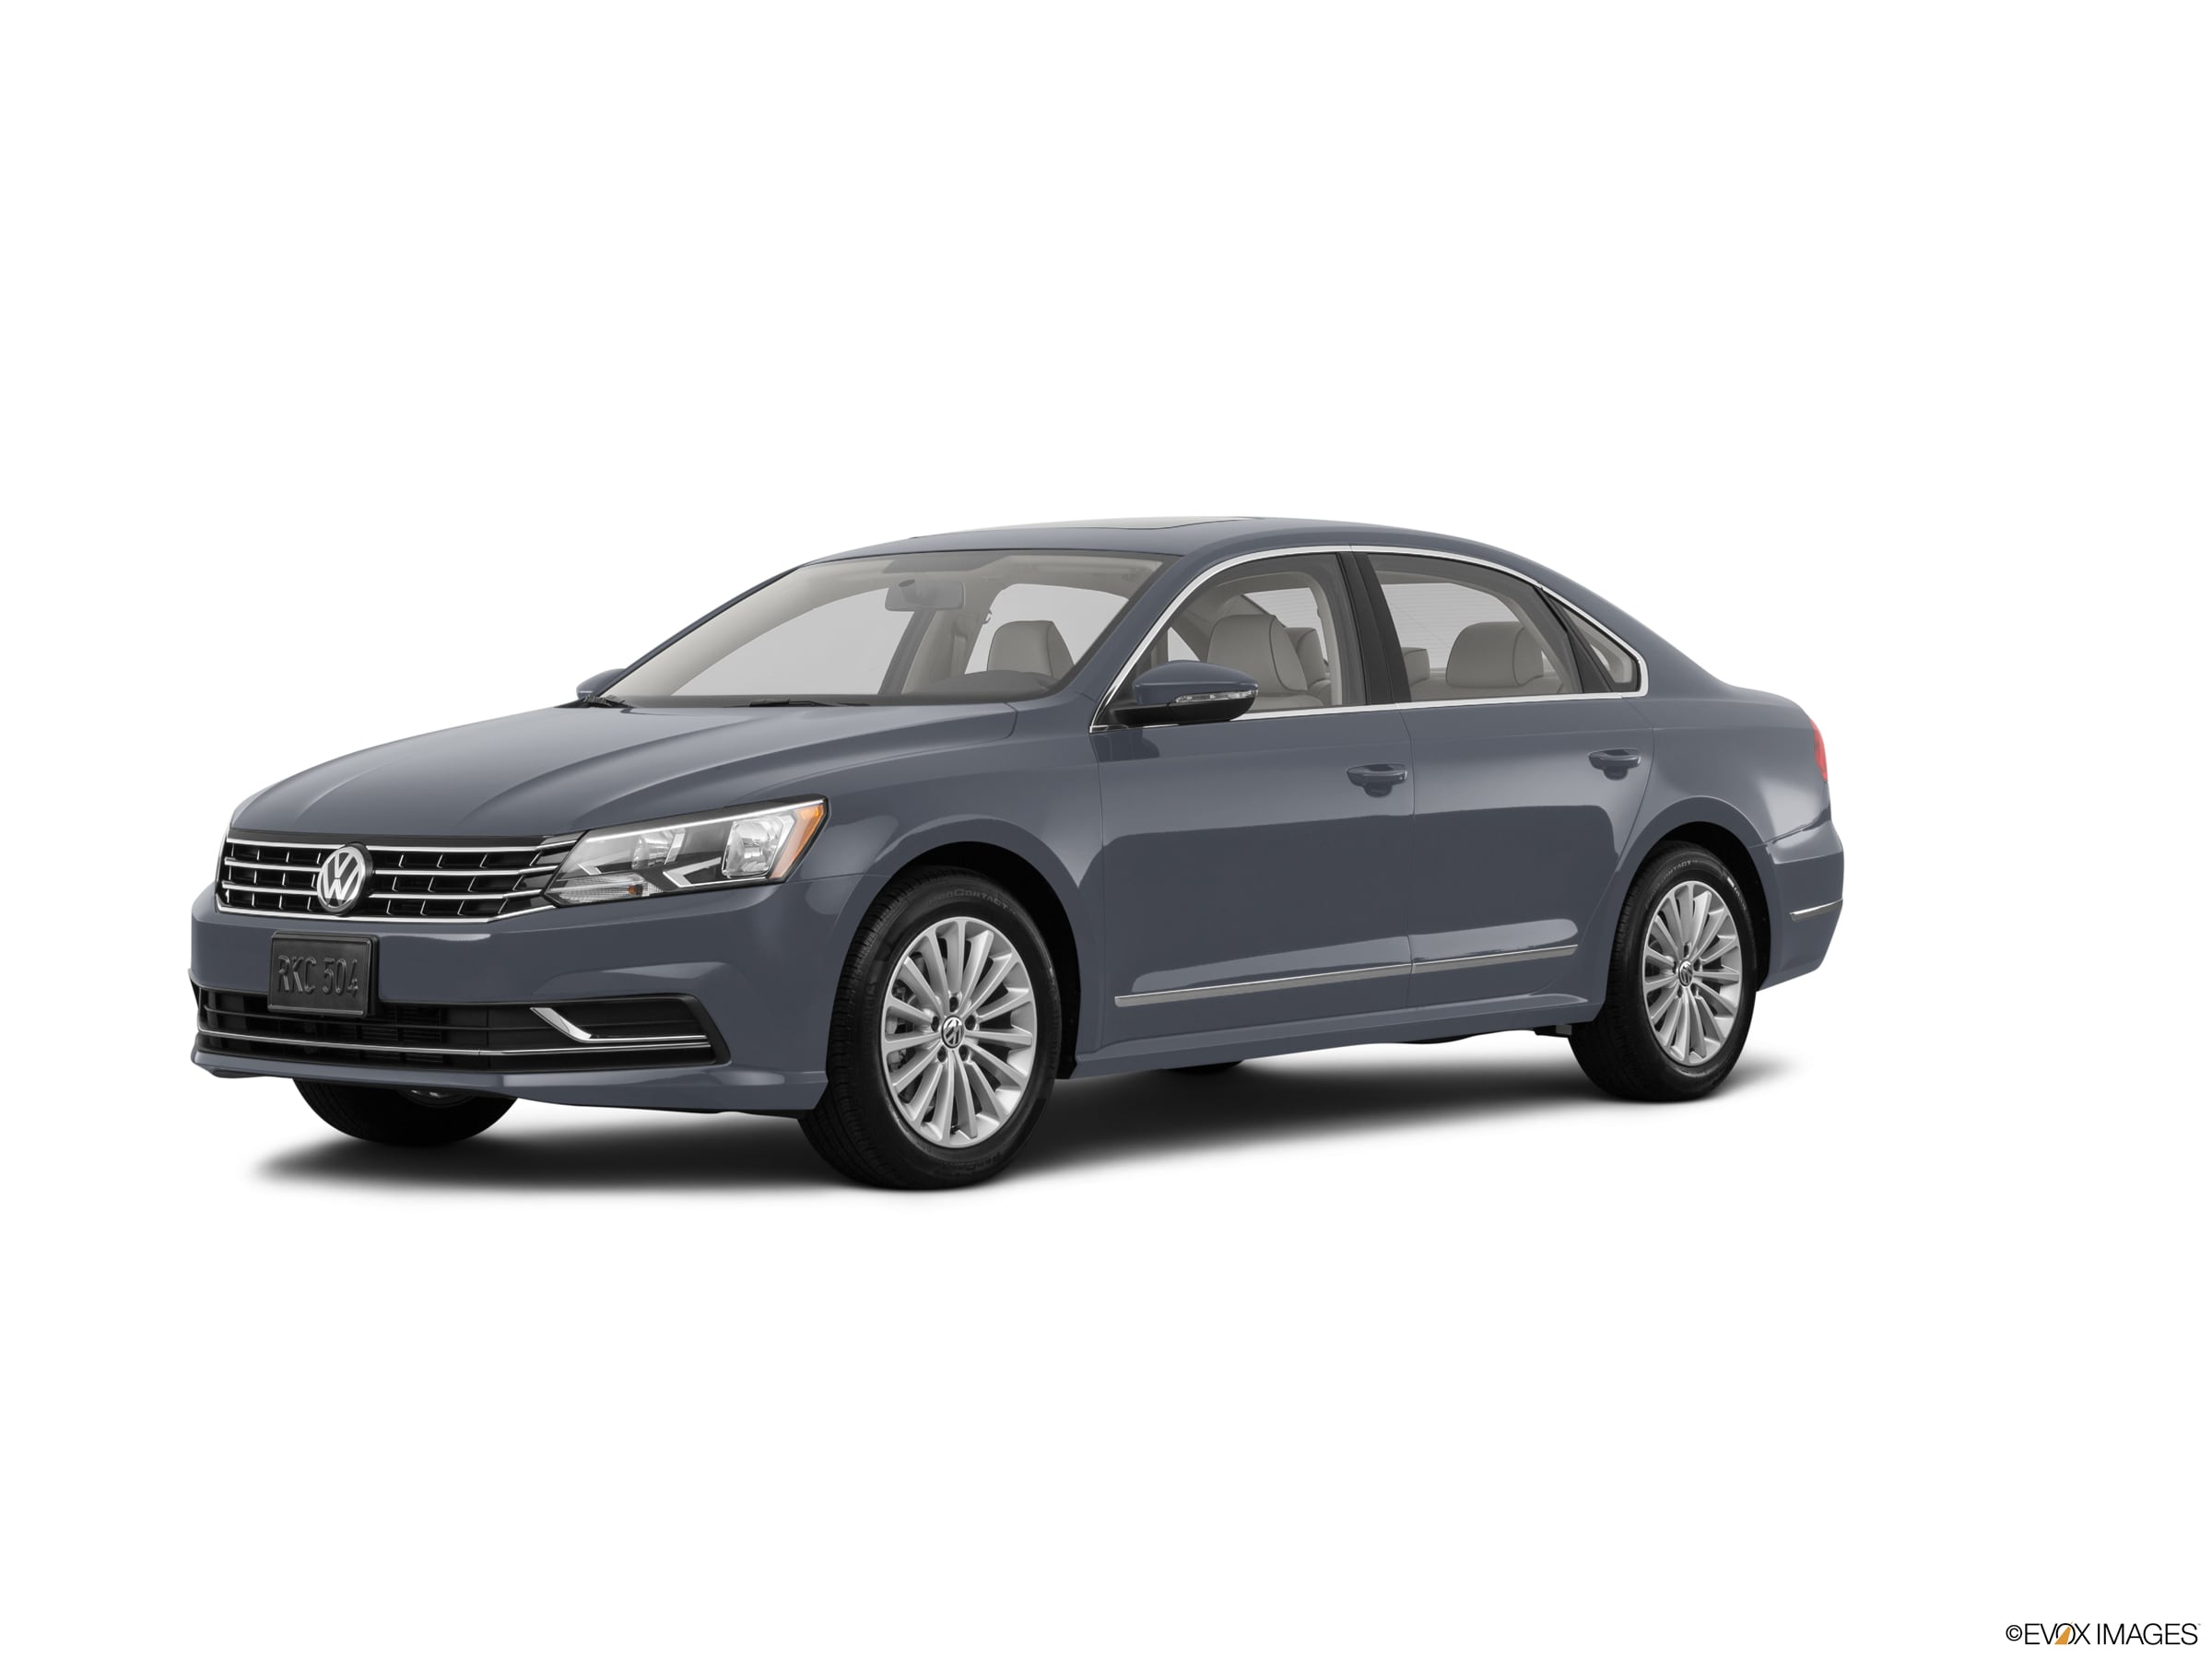 used 2017 volkswagen passat for sale union city ga used car dealer atlanta area stk thc083134 audi south atlanta